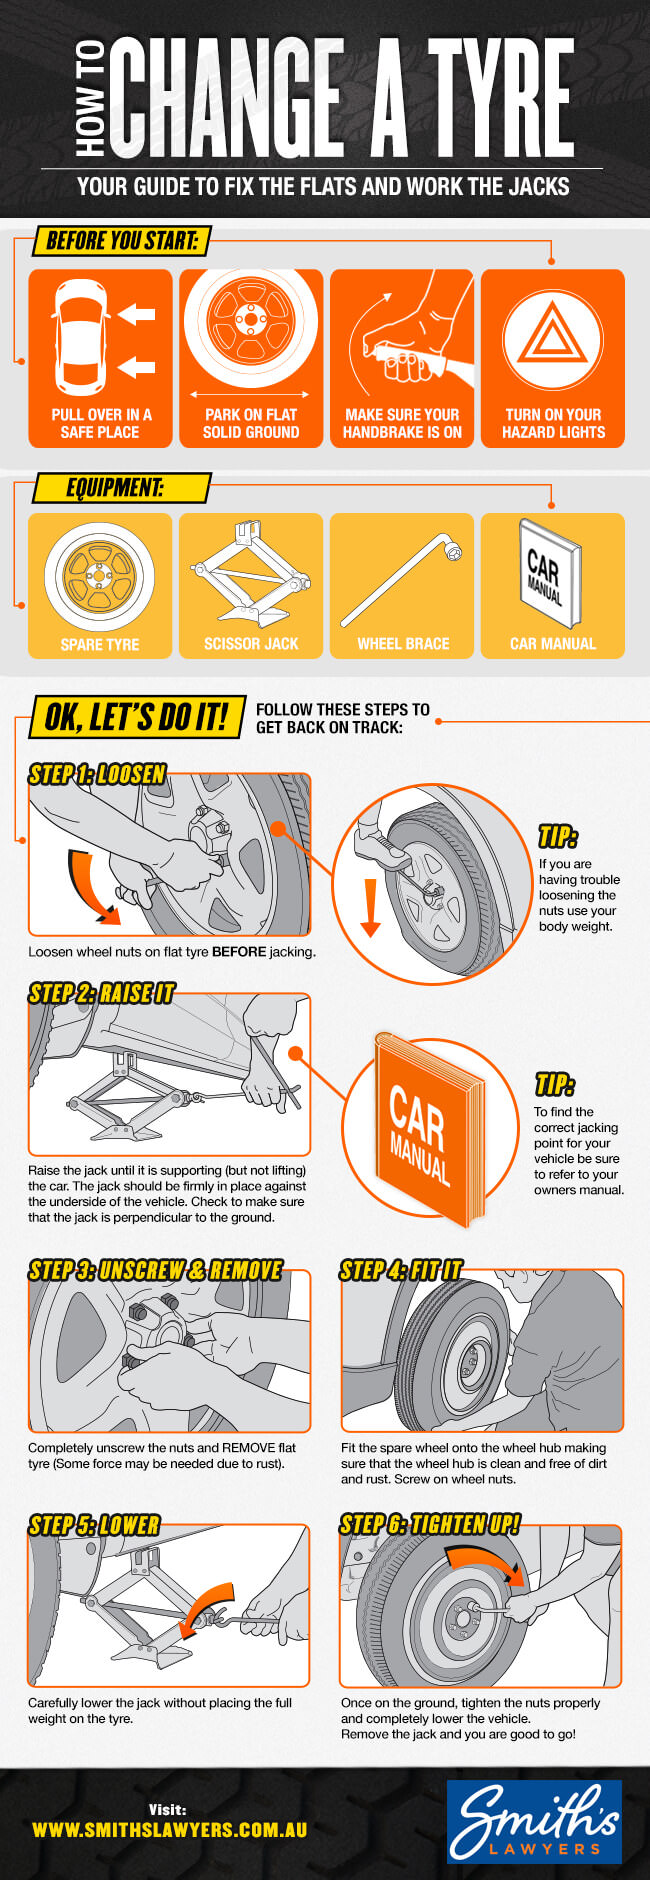 Instructions to change a tyre